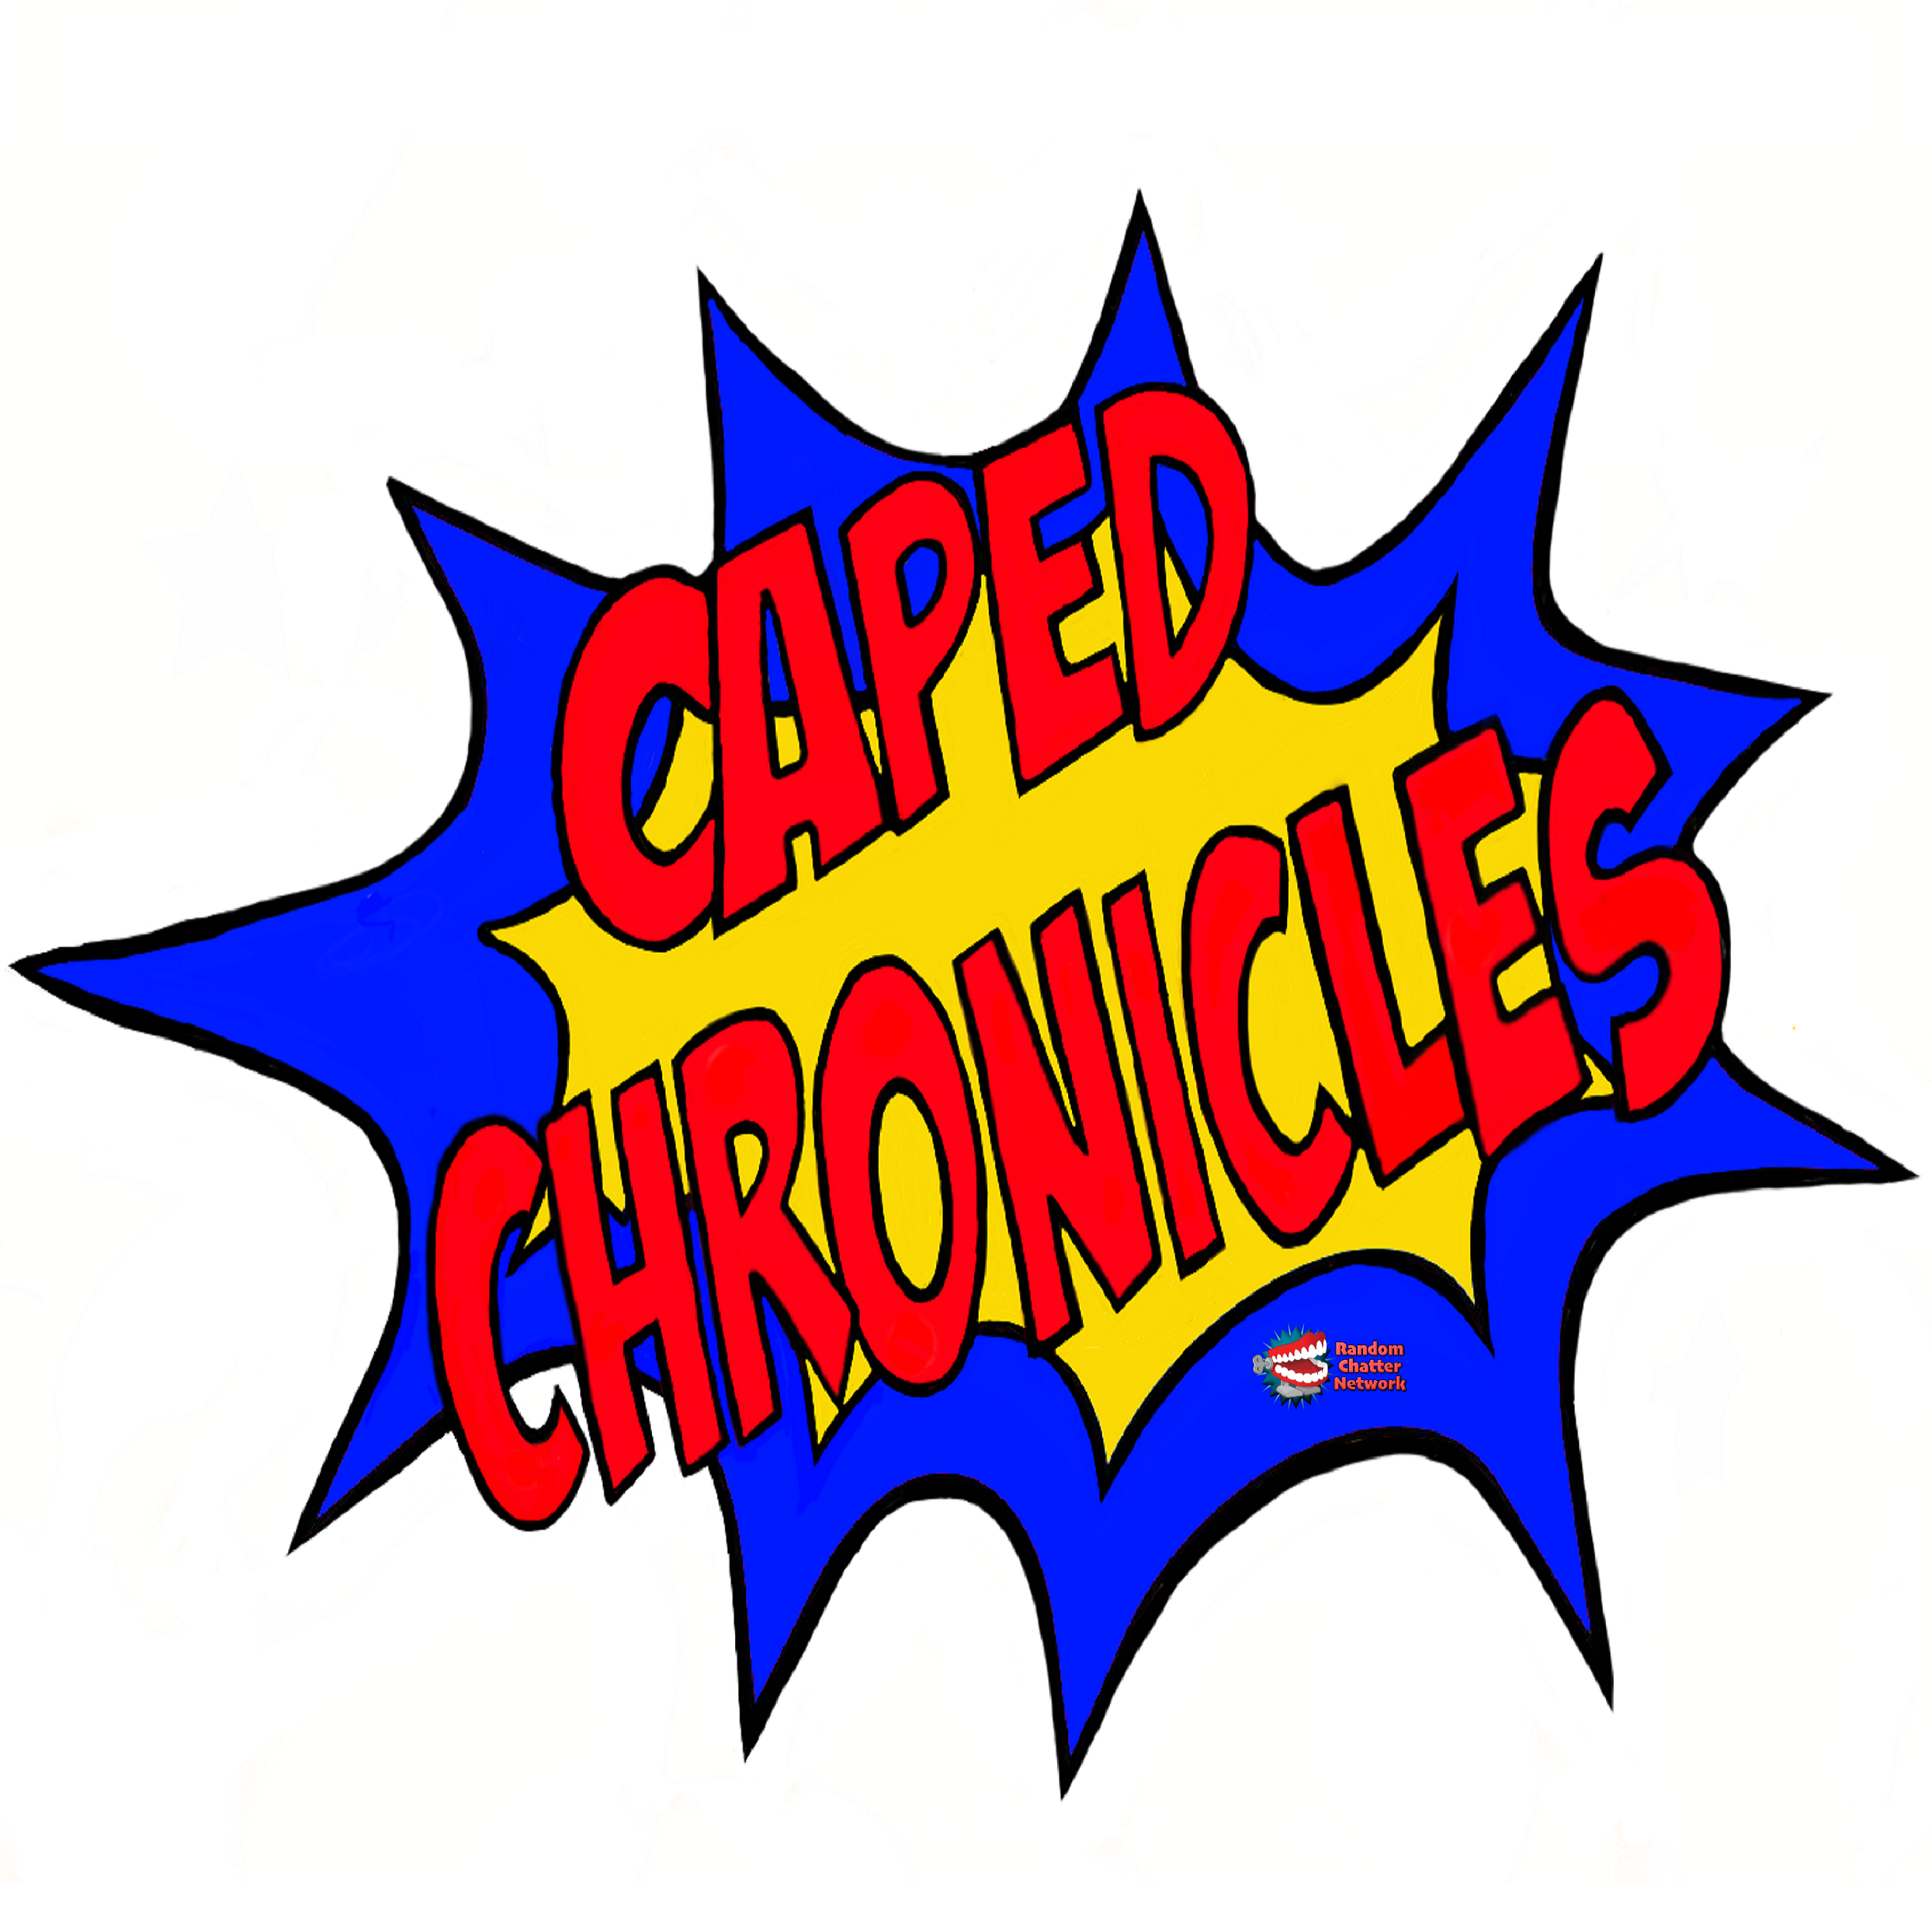 The Caped Chronicles